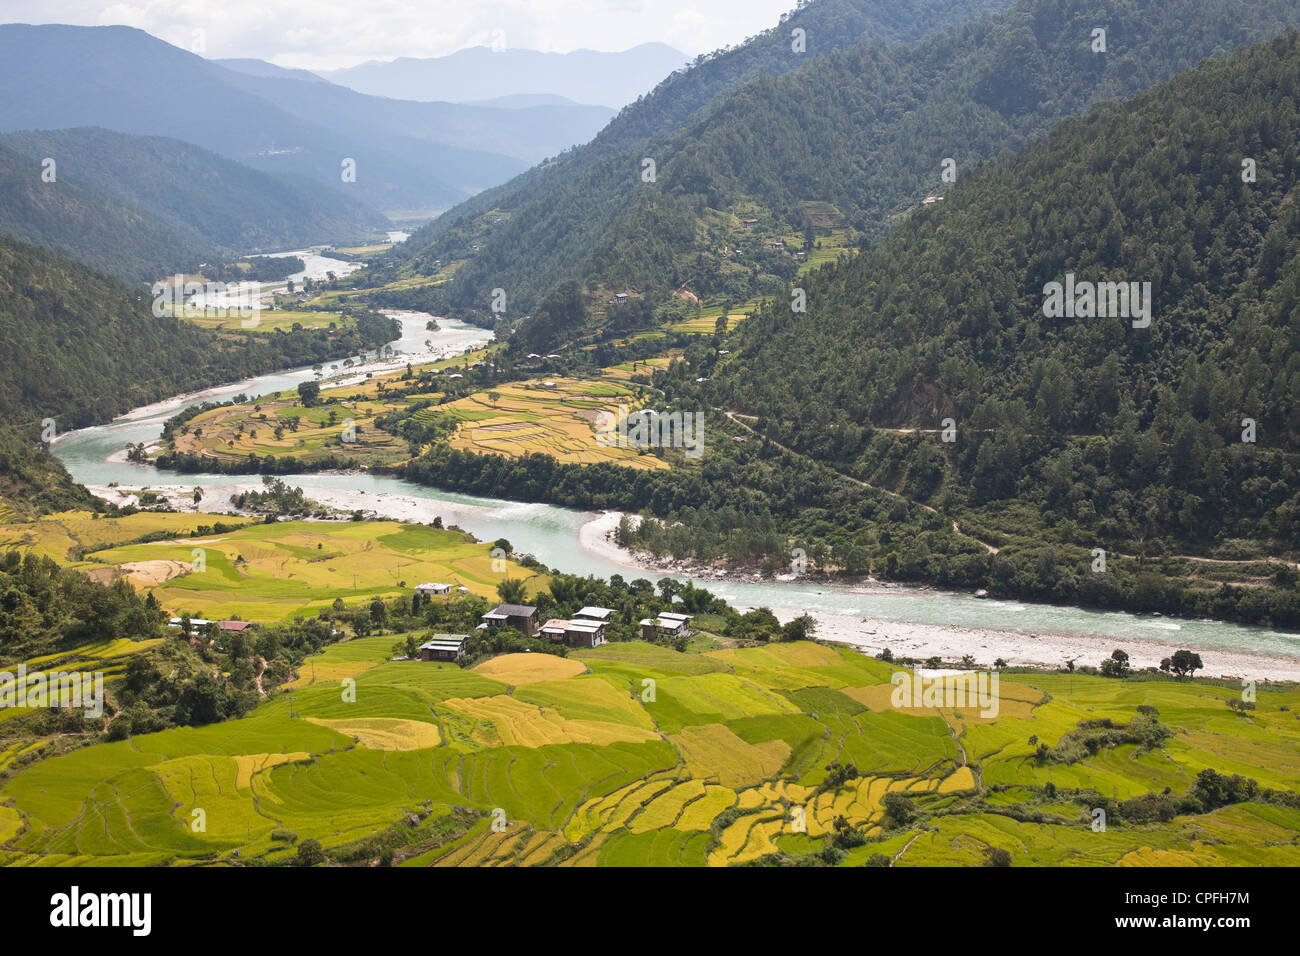 The Mo Chhu river in Punakha Valley, Bhutan. - Stock Image